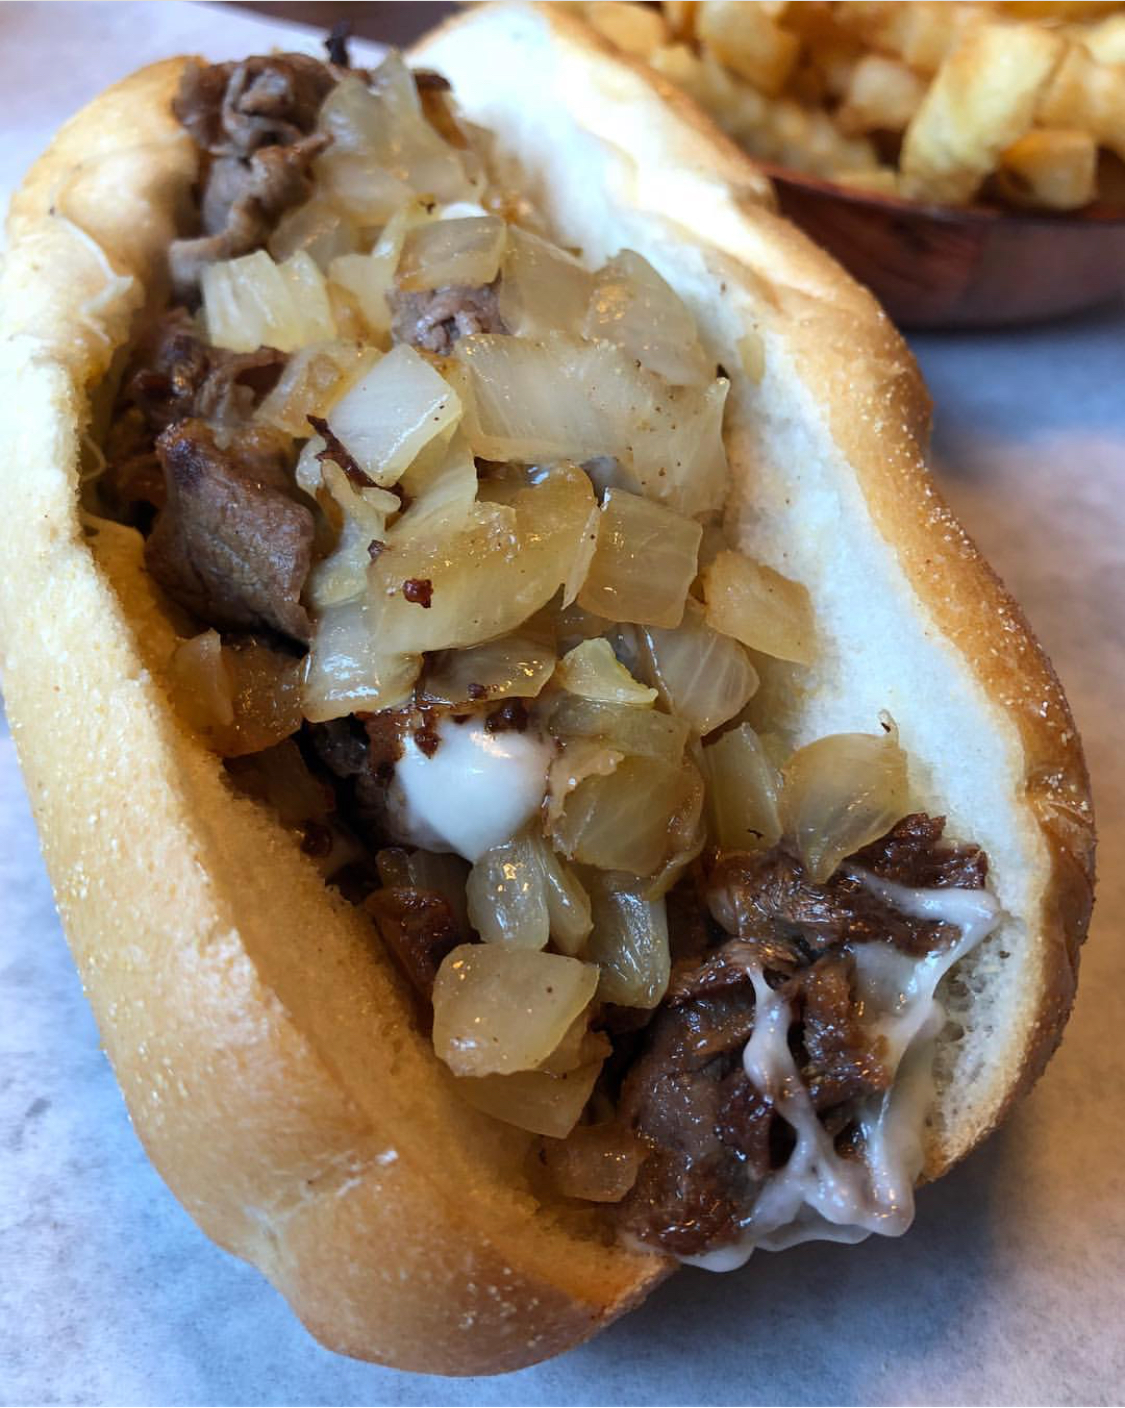 Joe's Steak + Sode Shop  Joe's Steaks + Soda Shop has been serving the finest cheesesteaks in Philadelphia for 60+ years.